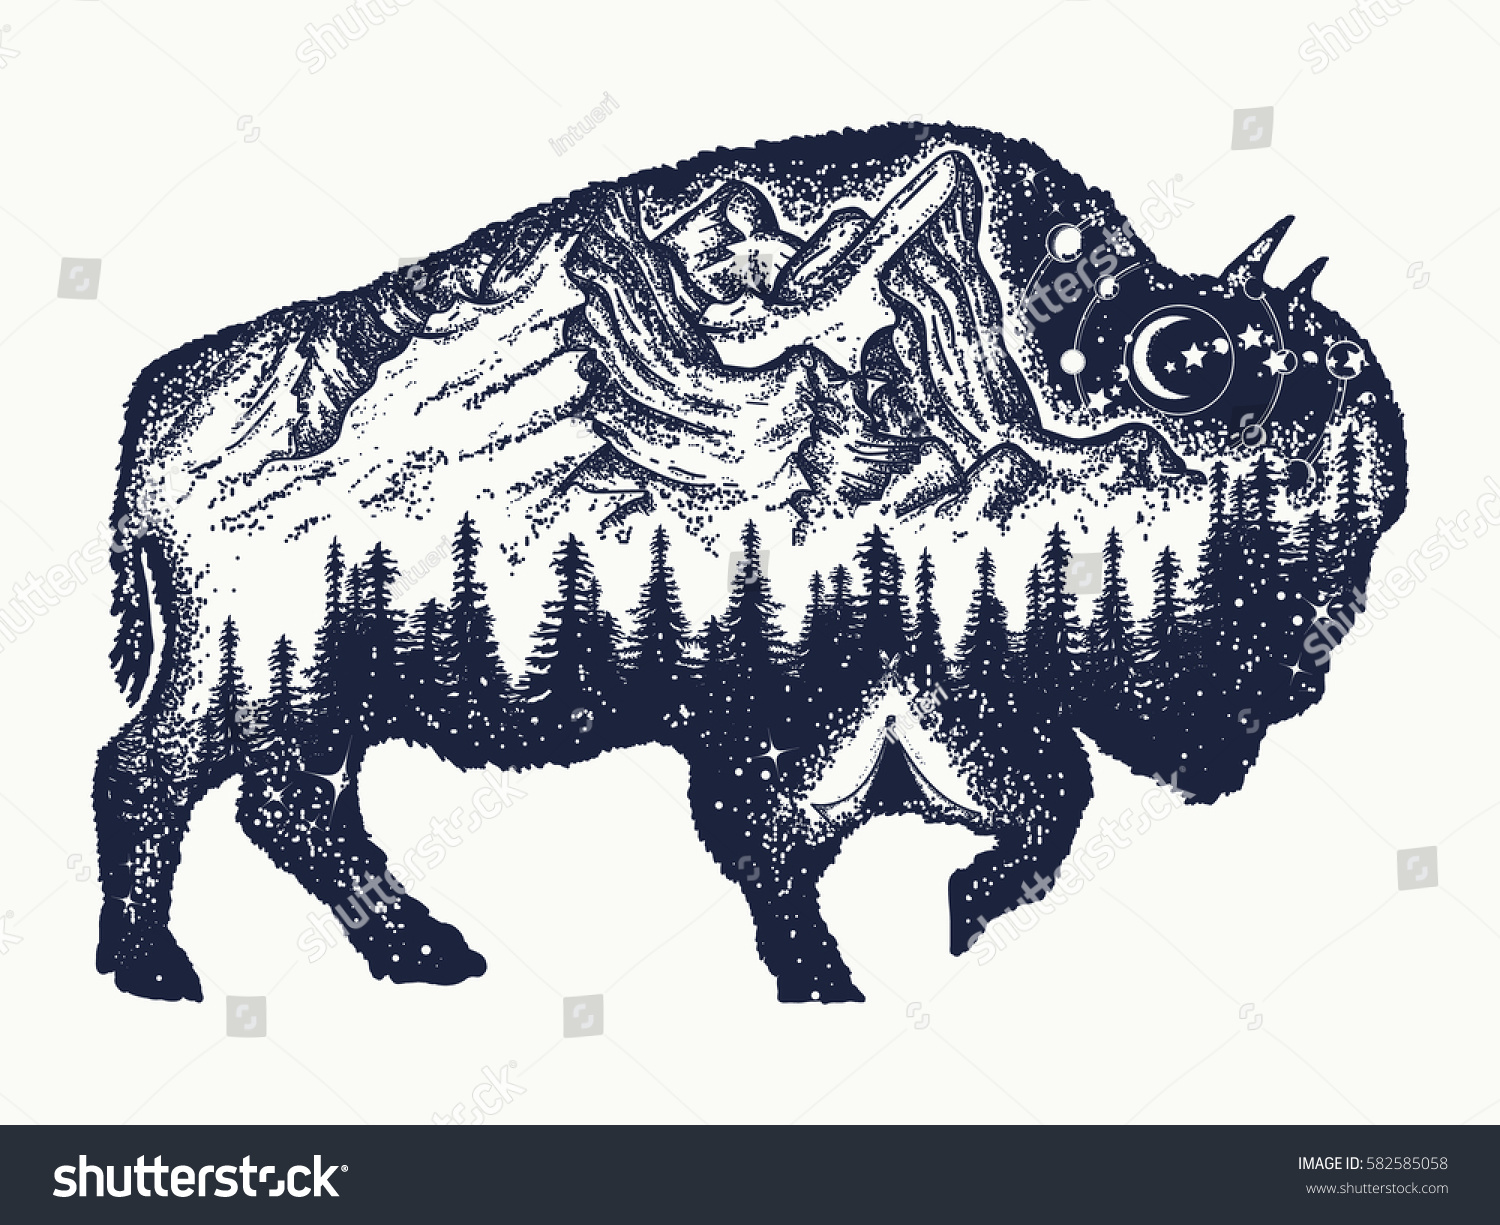 Buffalo Tribal Tattoo Designs